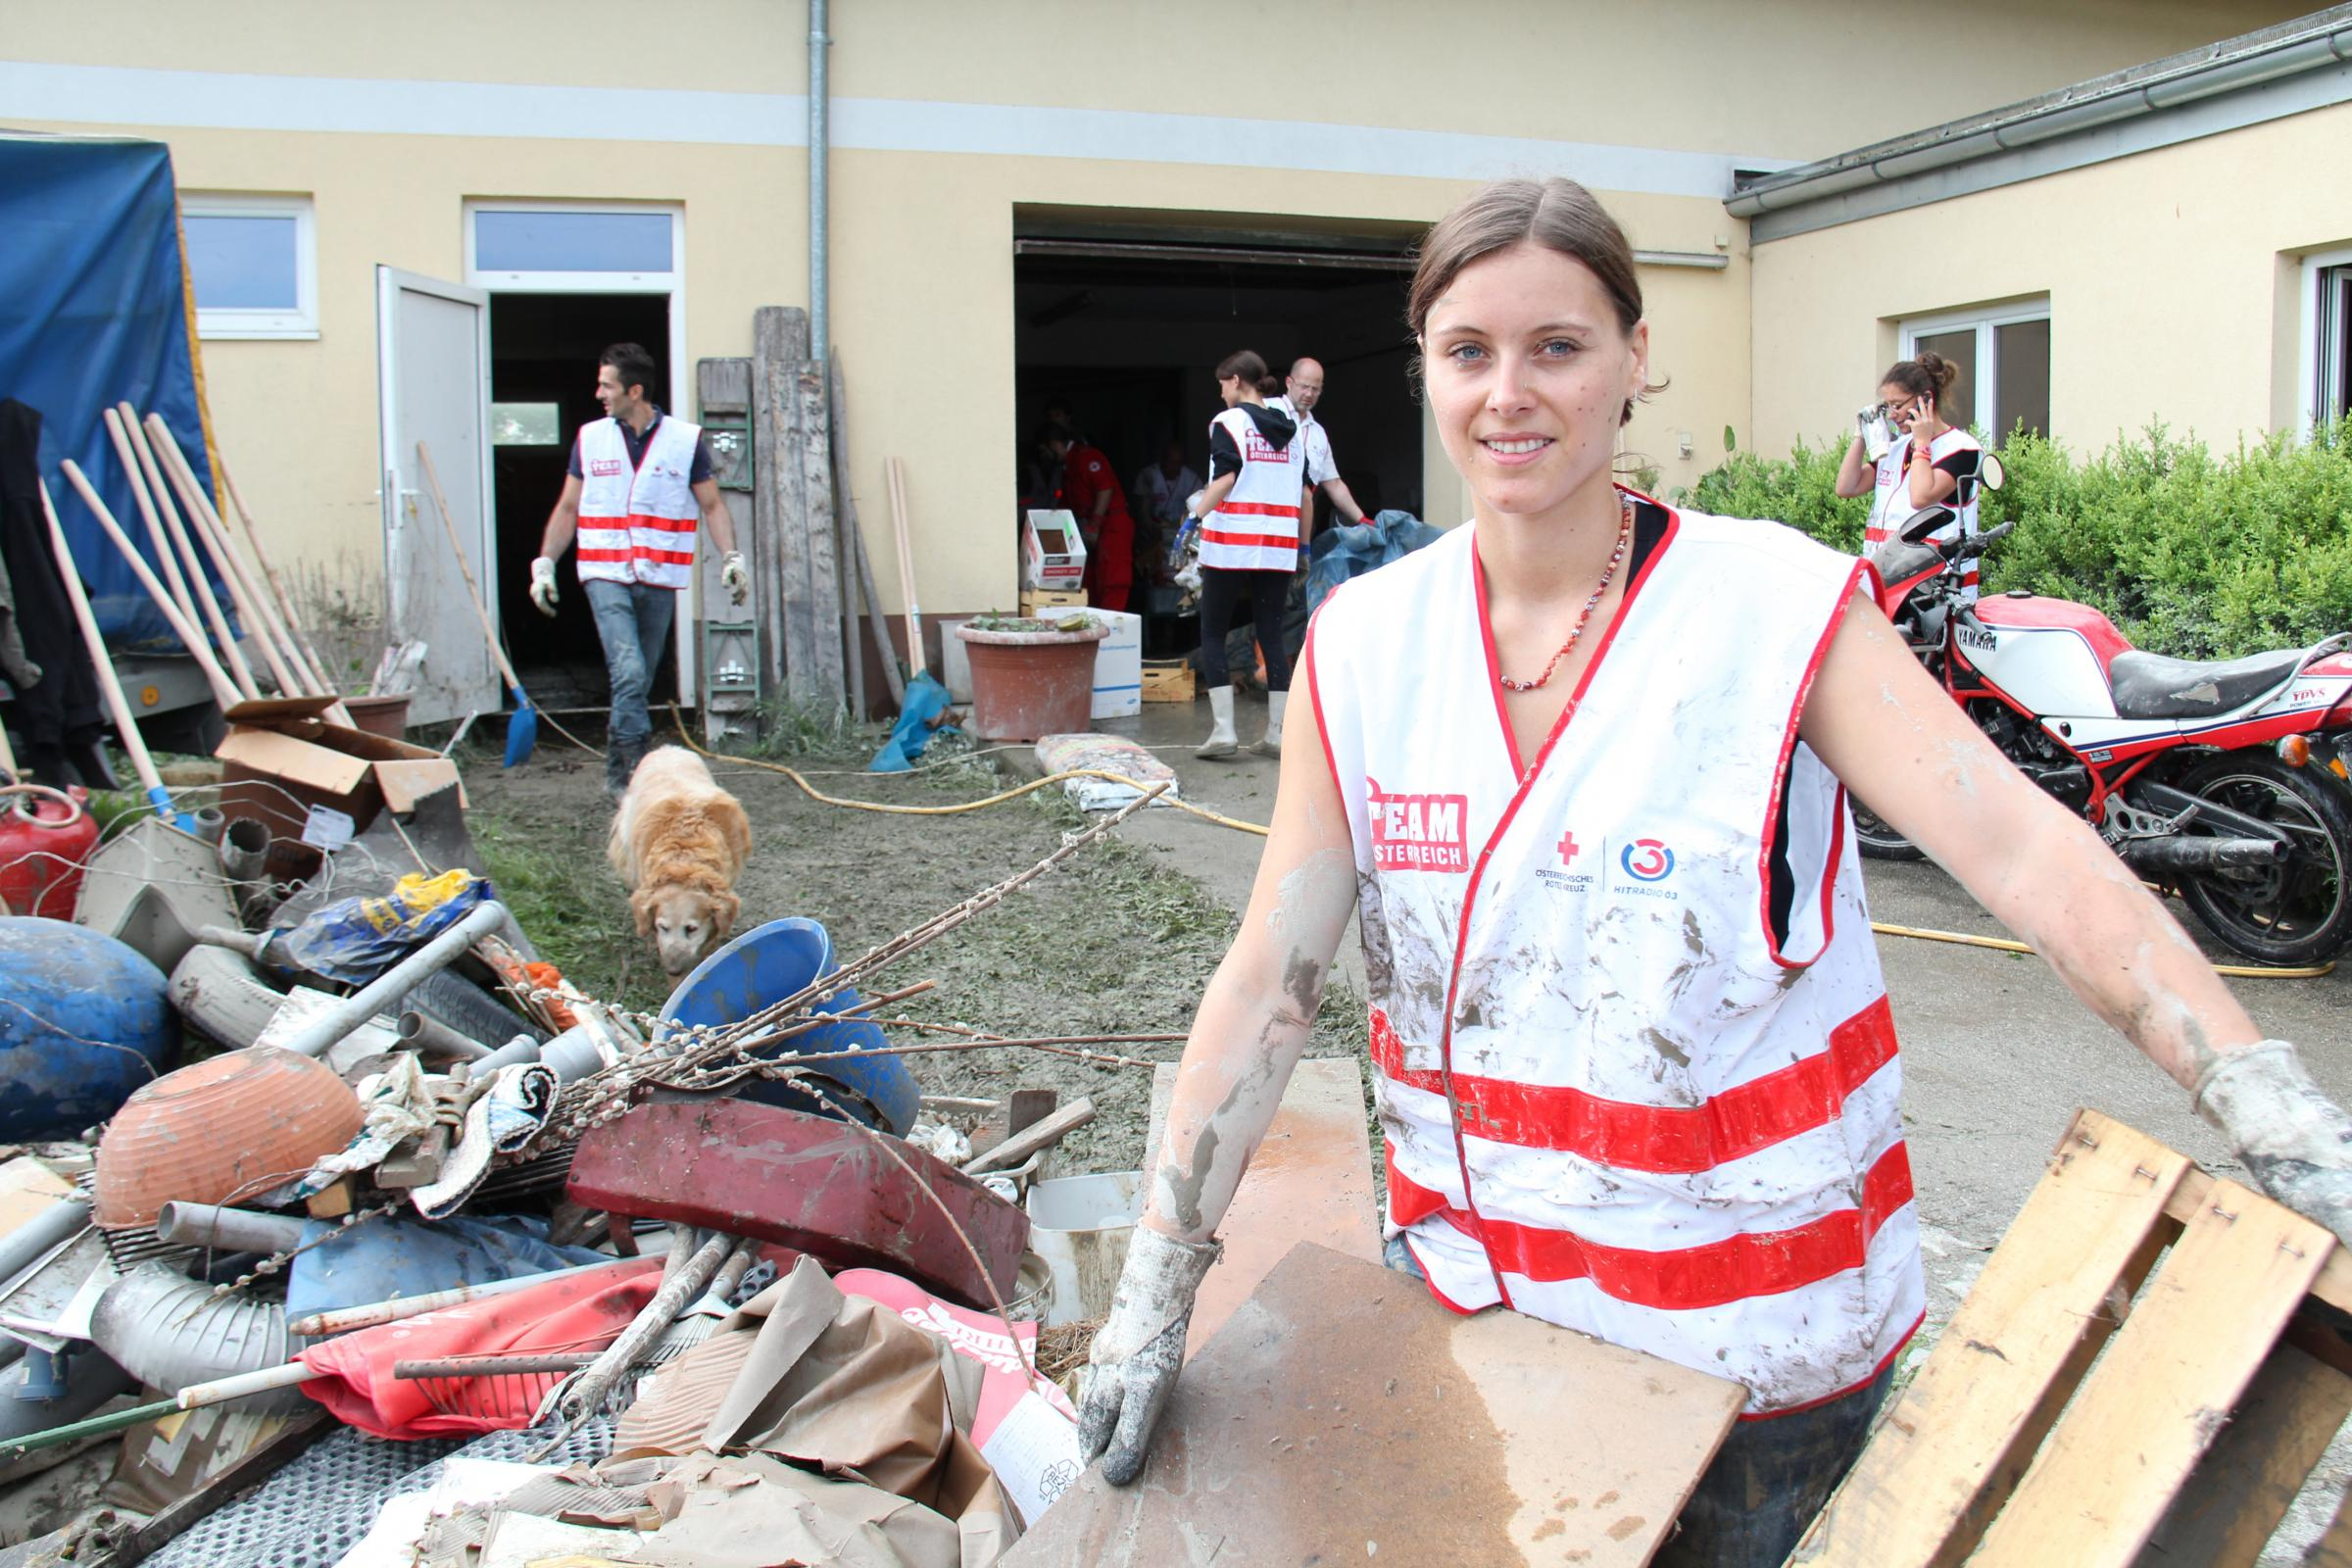 Red Cross emergency reserves help respond to incidents like flooding